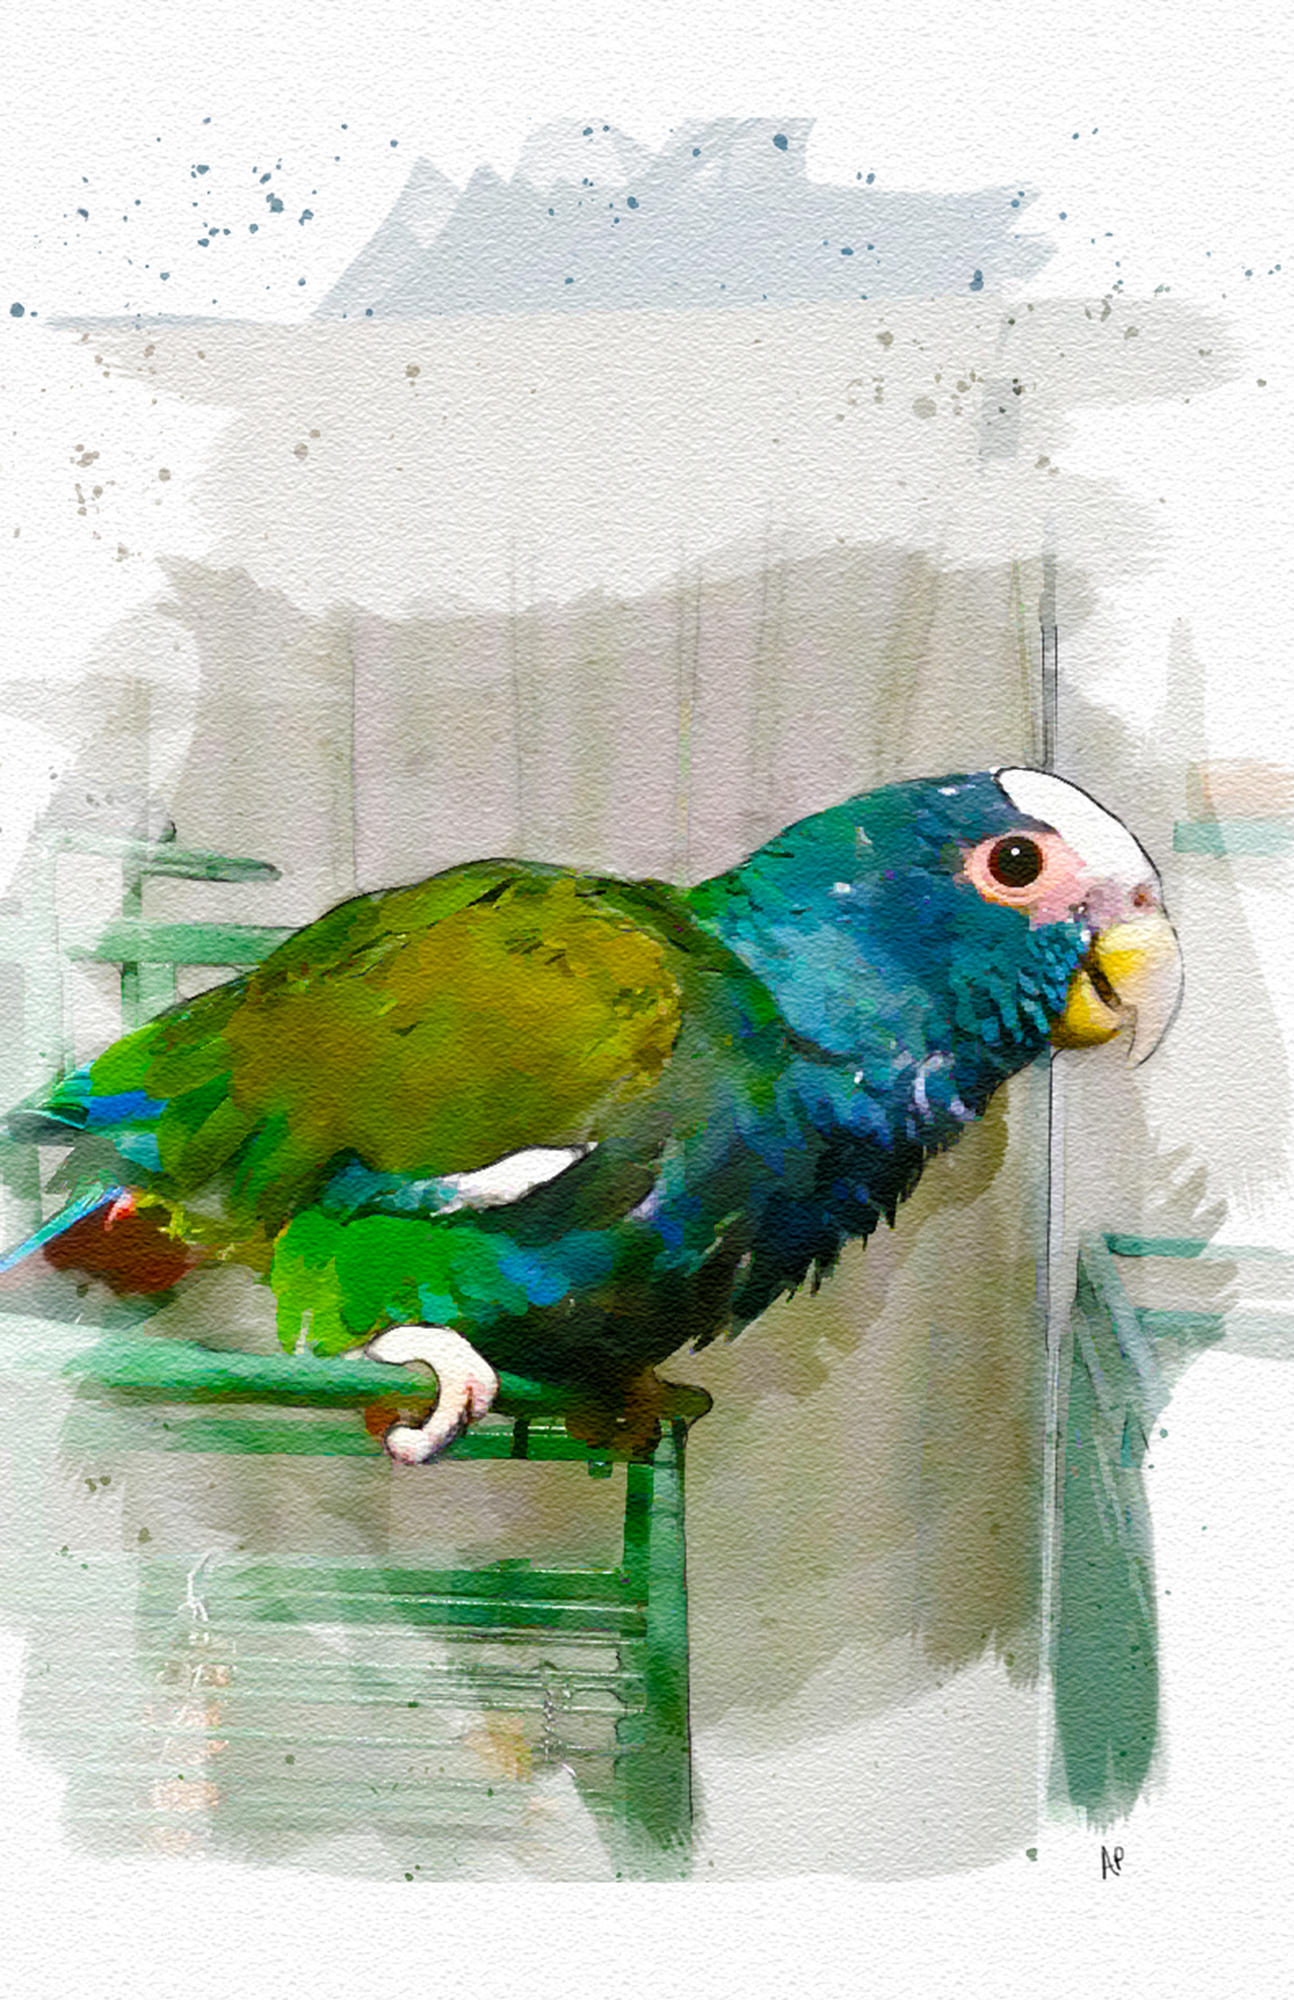 Watercolor_Digital_Parrot_Bird.jpg